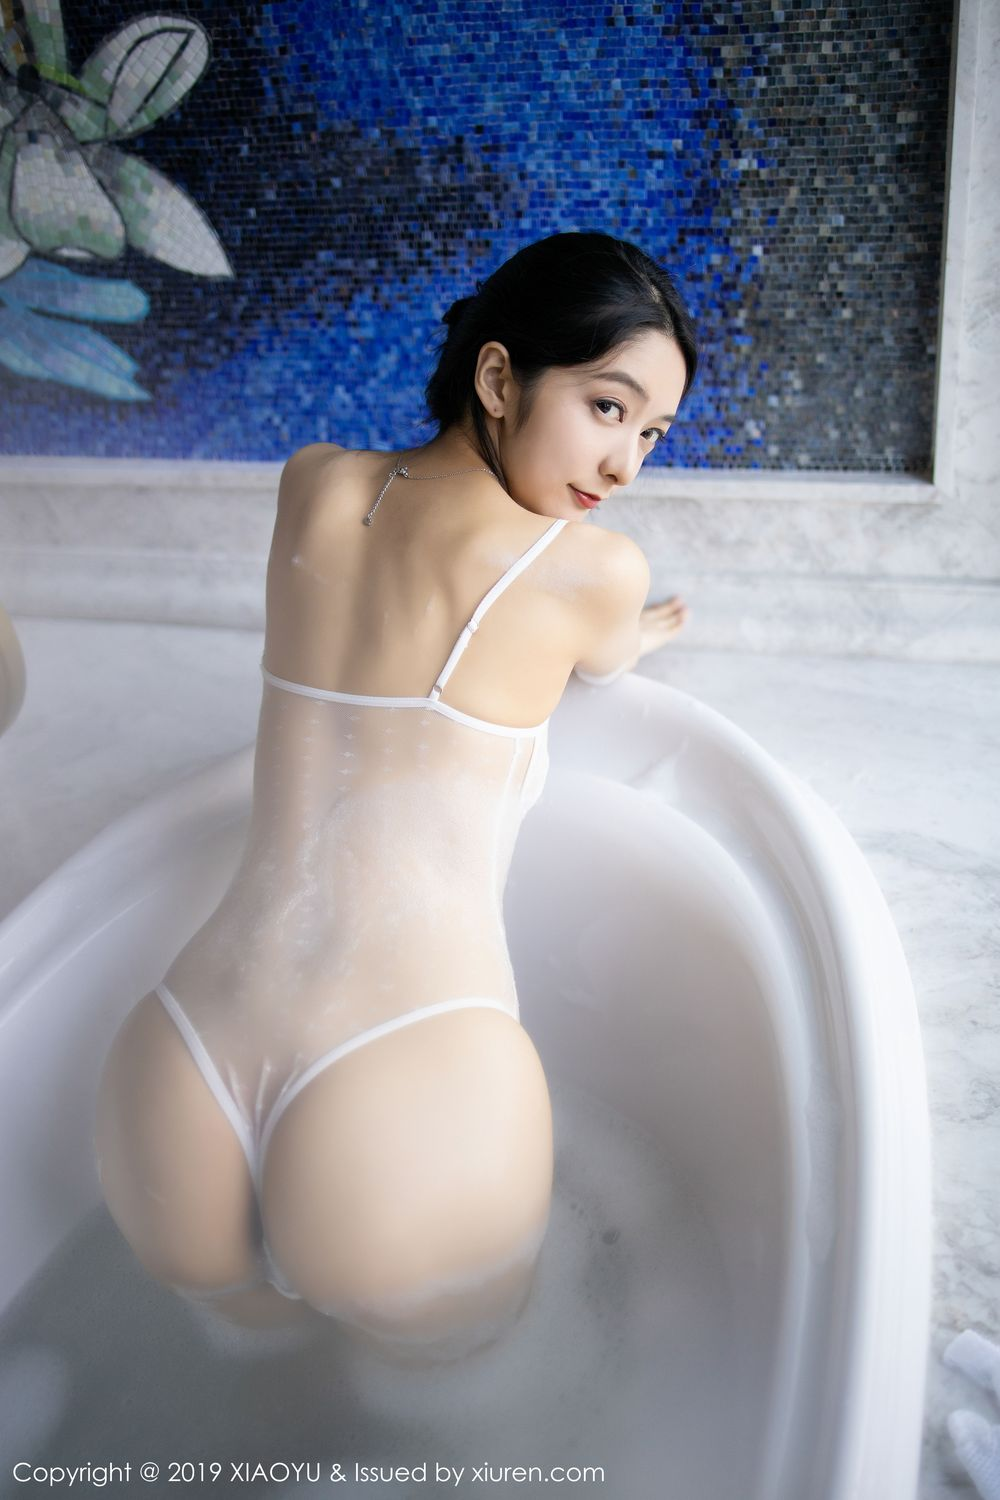 [XiaoYu] Vol.223 Xiao Re Ba 41P, Di Yi, Tall, Wet, XiaoYu